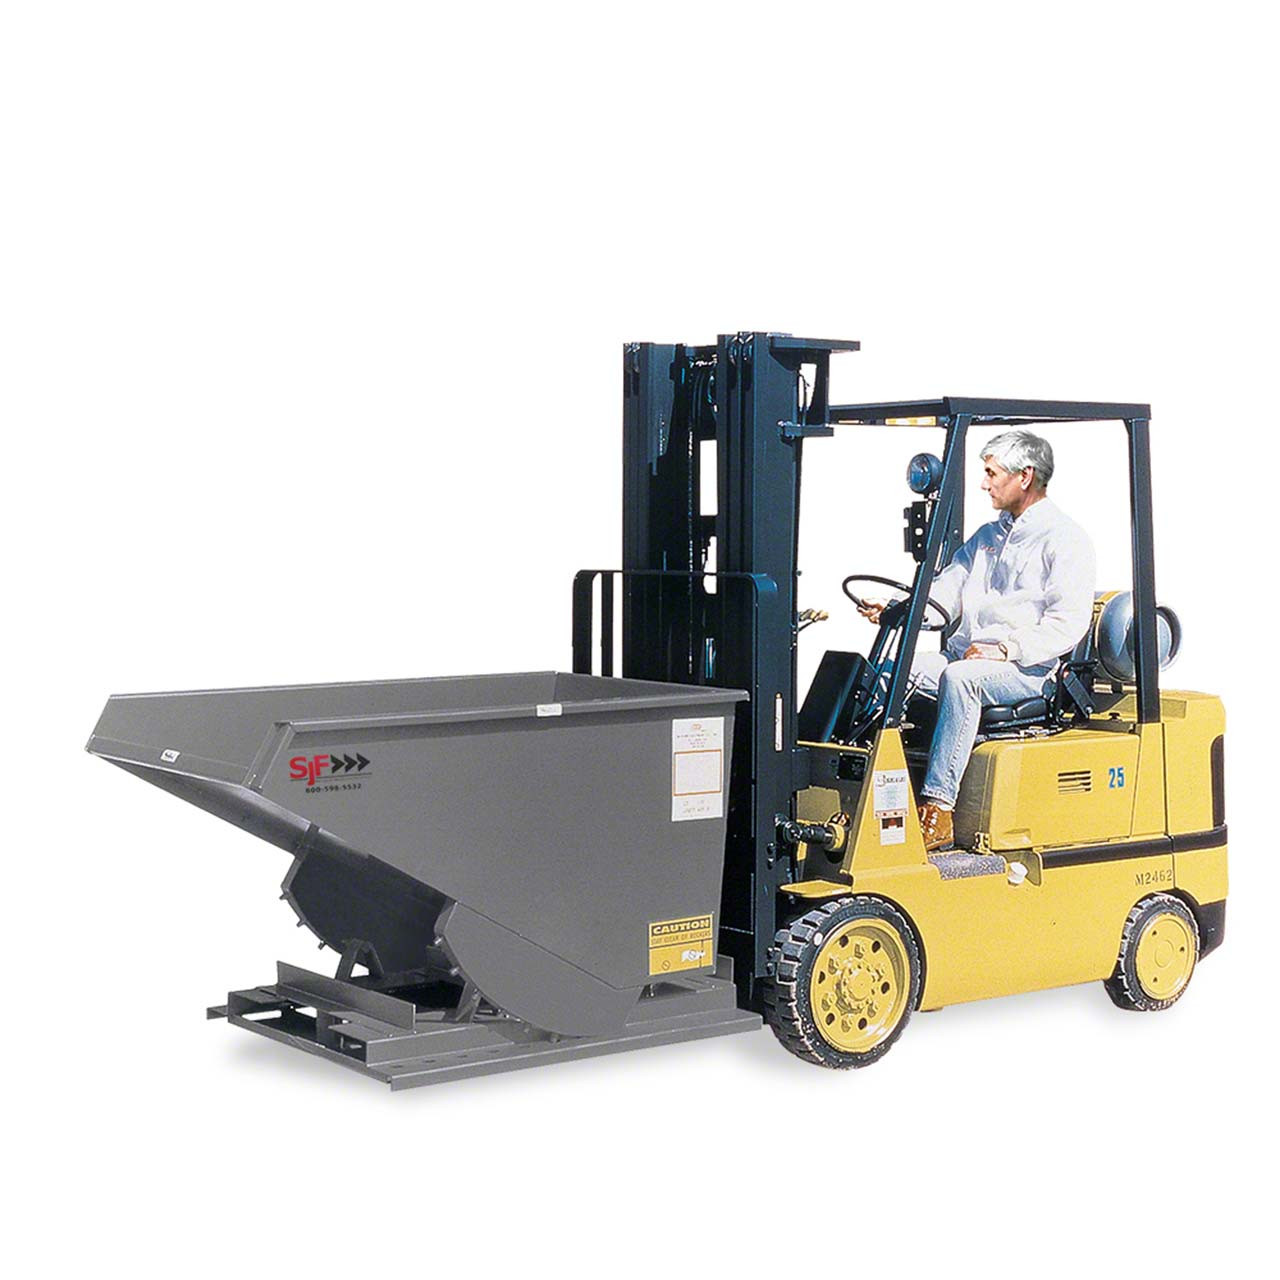 Dumping the Self-Dumping Hopper from a Forklift